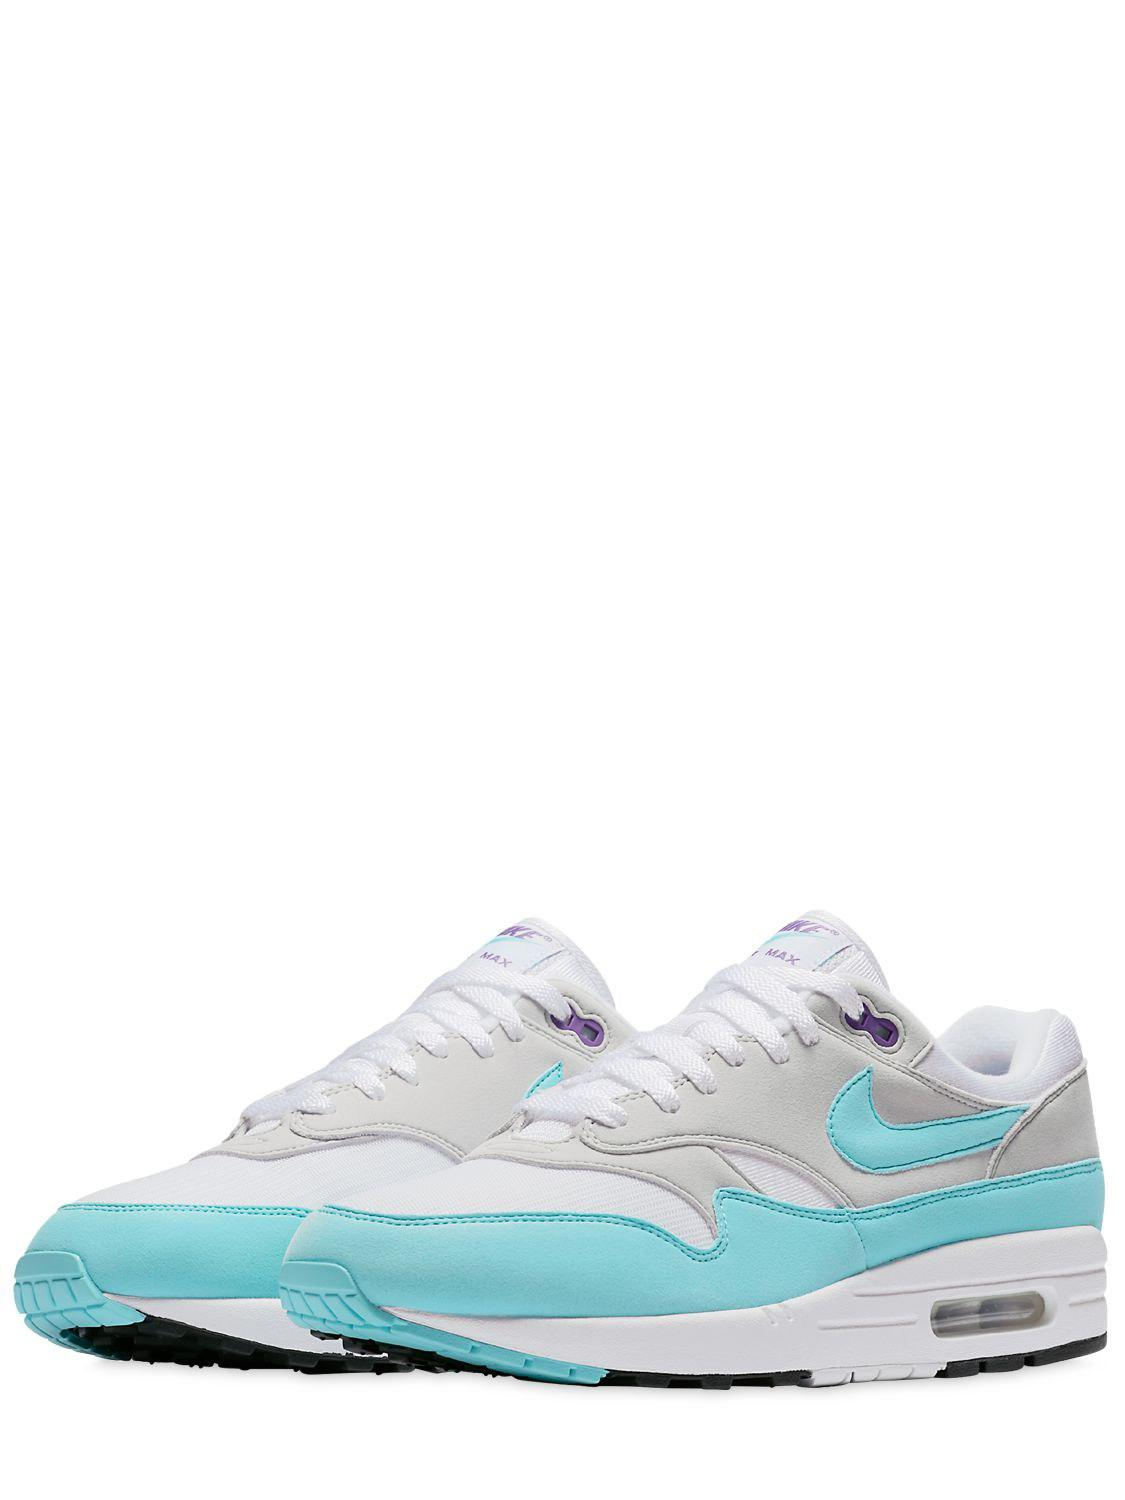 bab2520d1b26bb Lyst - Nike Air Max 1 Anniversary Og Japan Sneakers in Blue